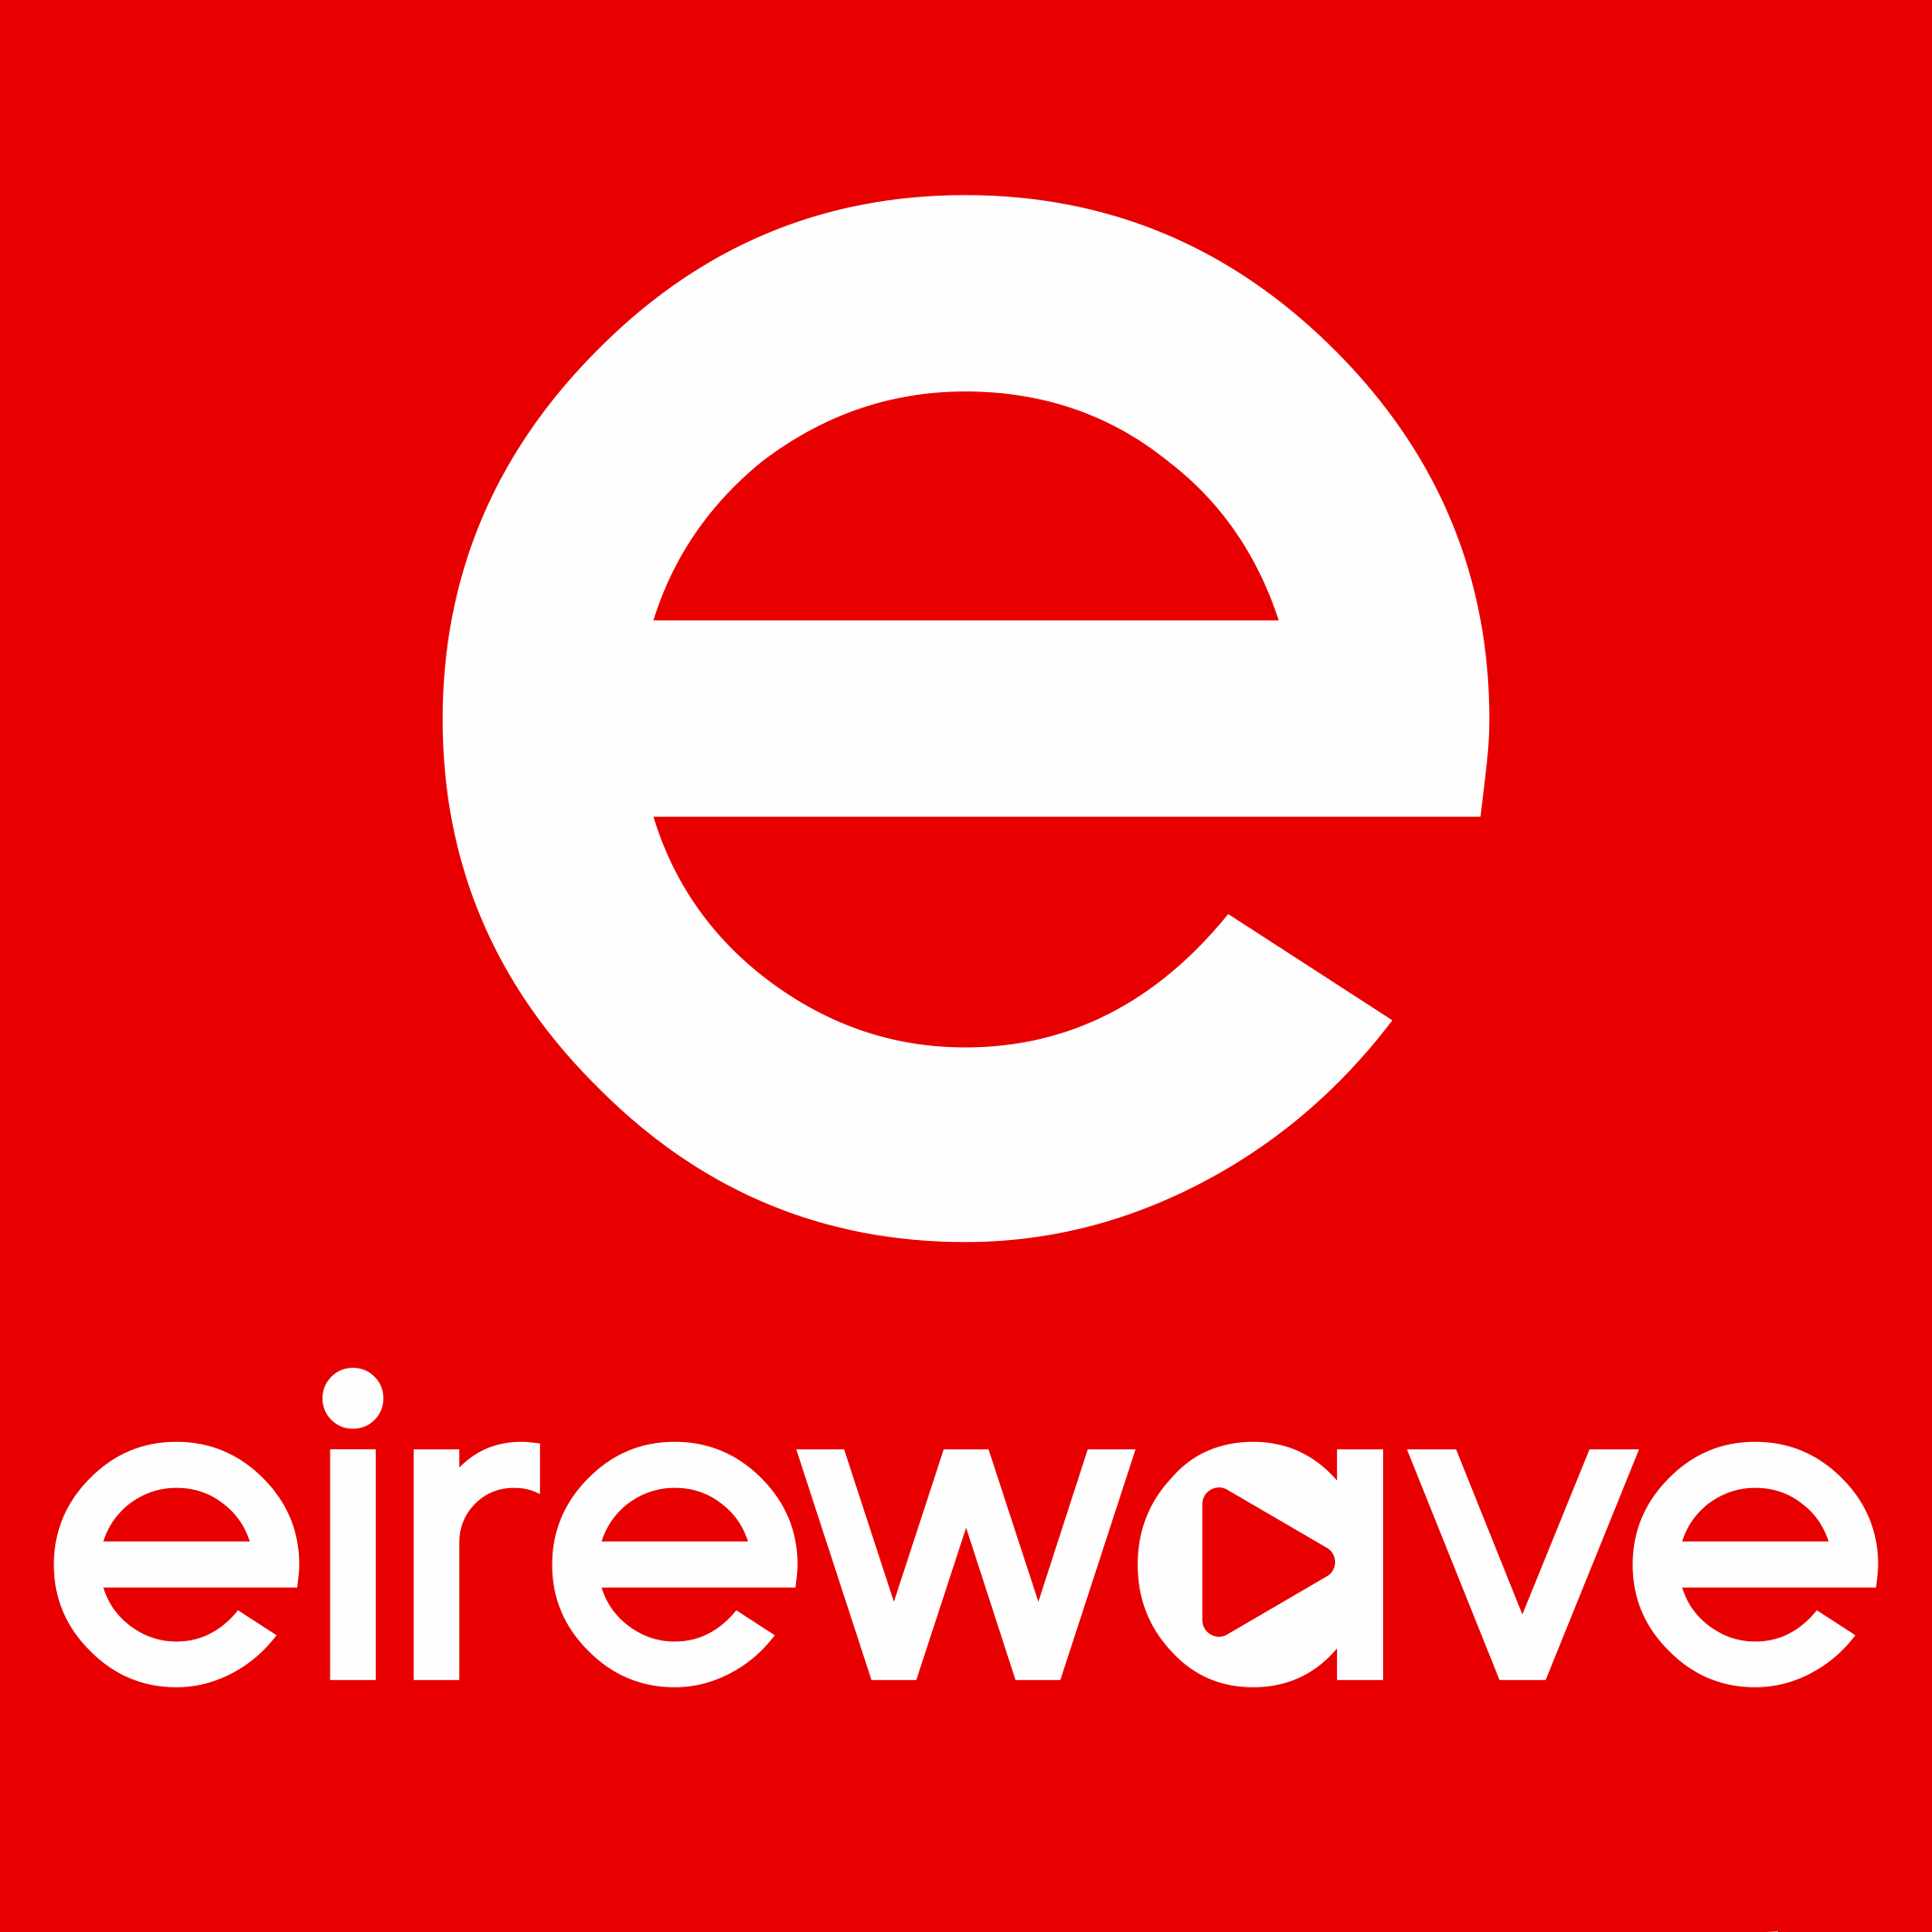 Eirewave proposes to play only contemporary Irish music